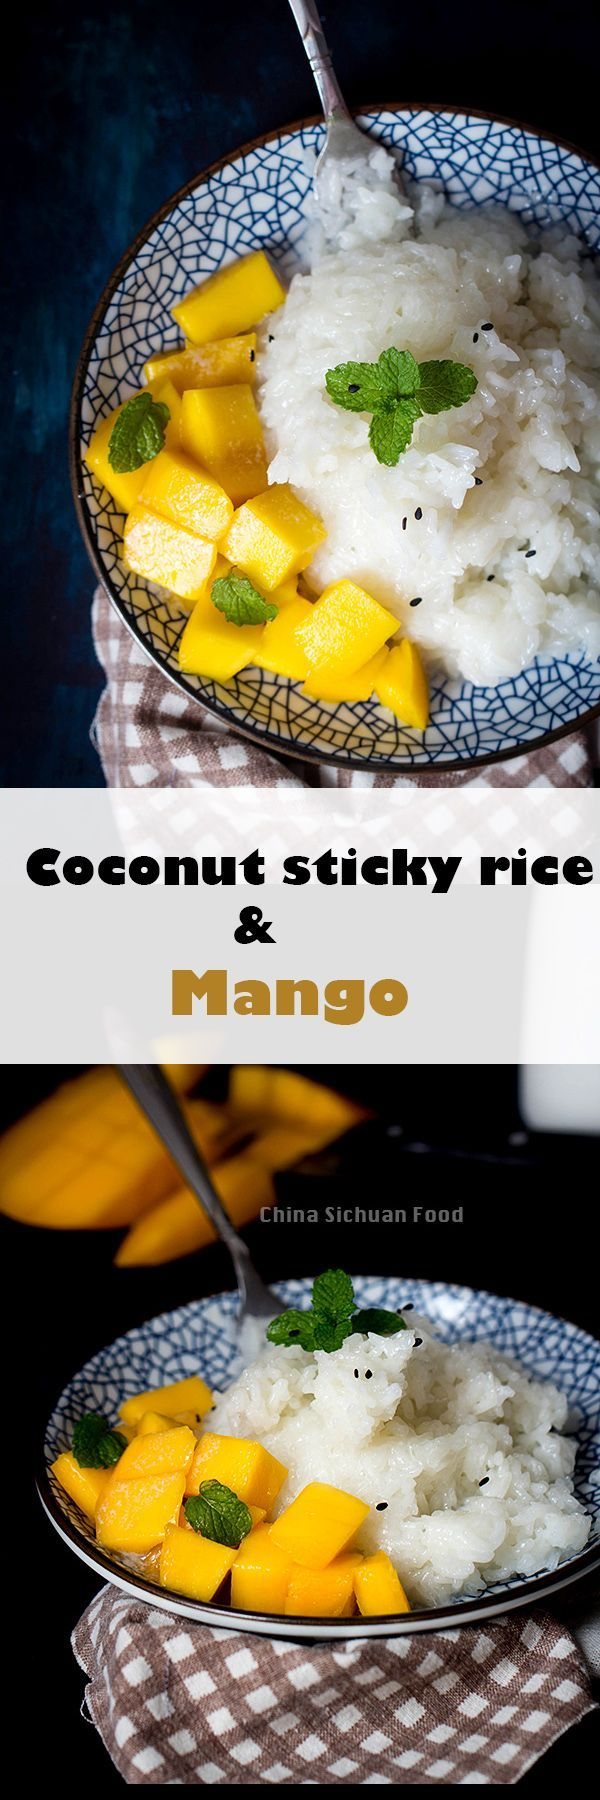 Authentic Thai Sticky Rice Recipe with Mango, ,